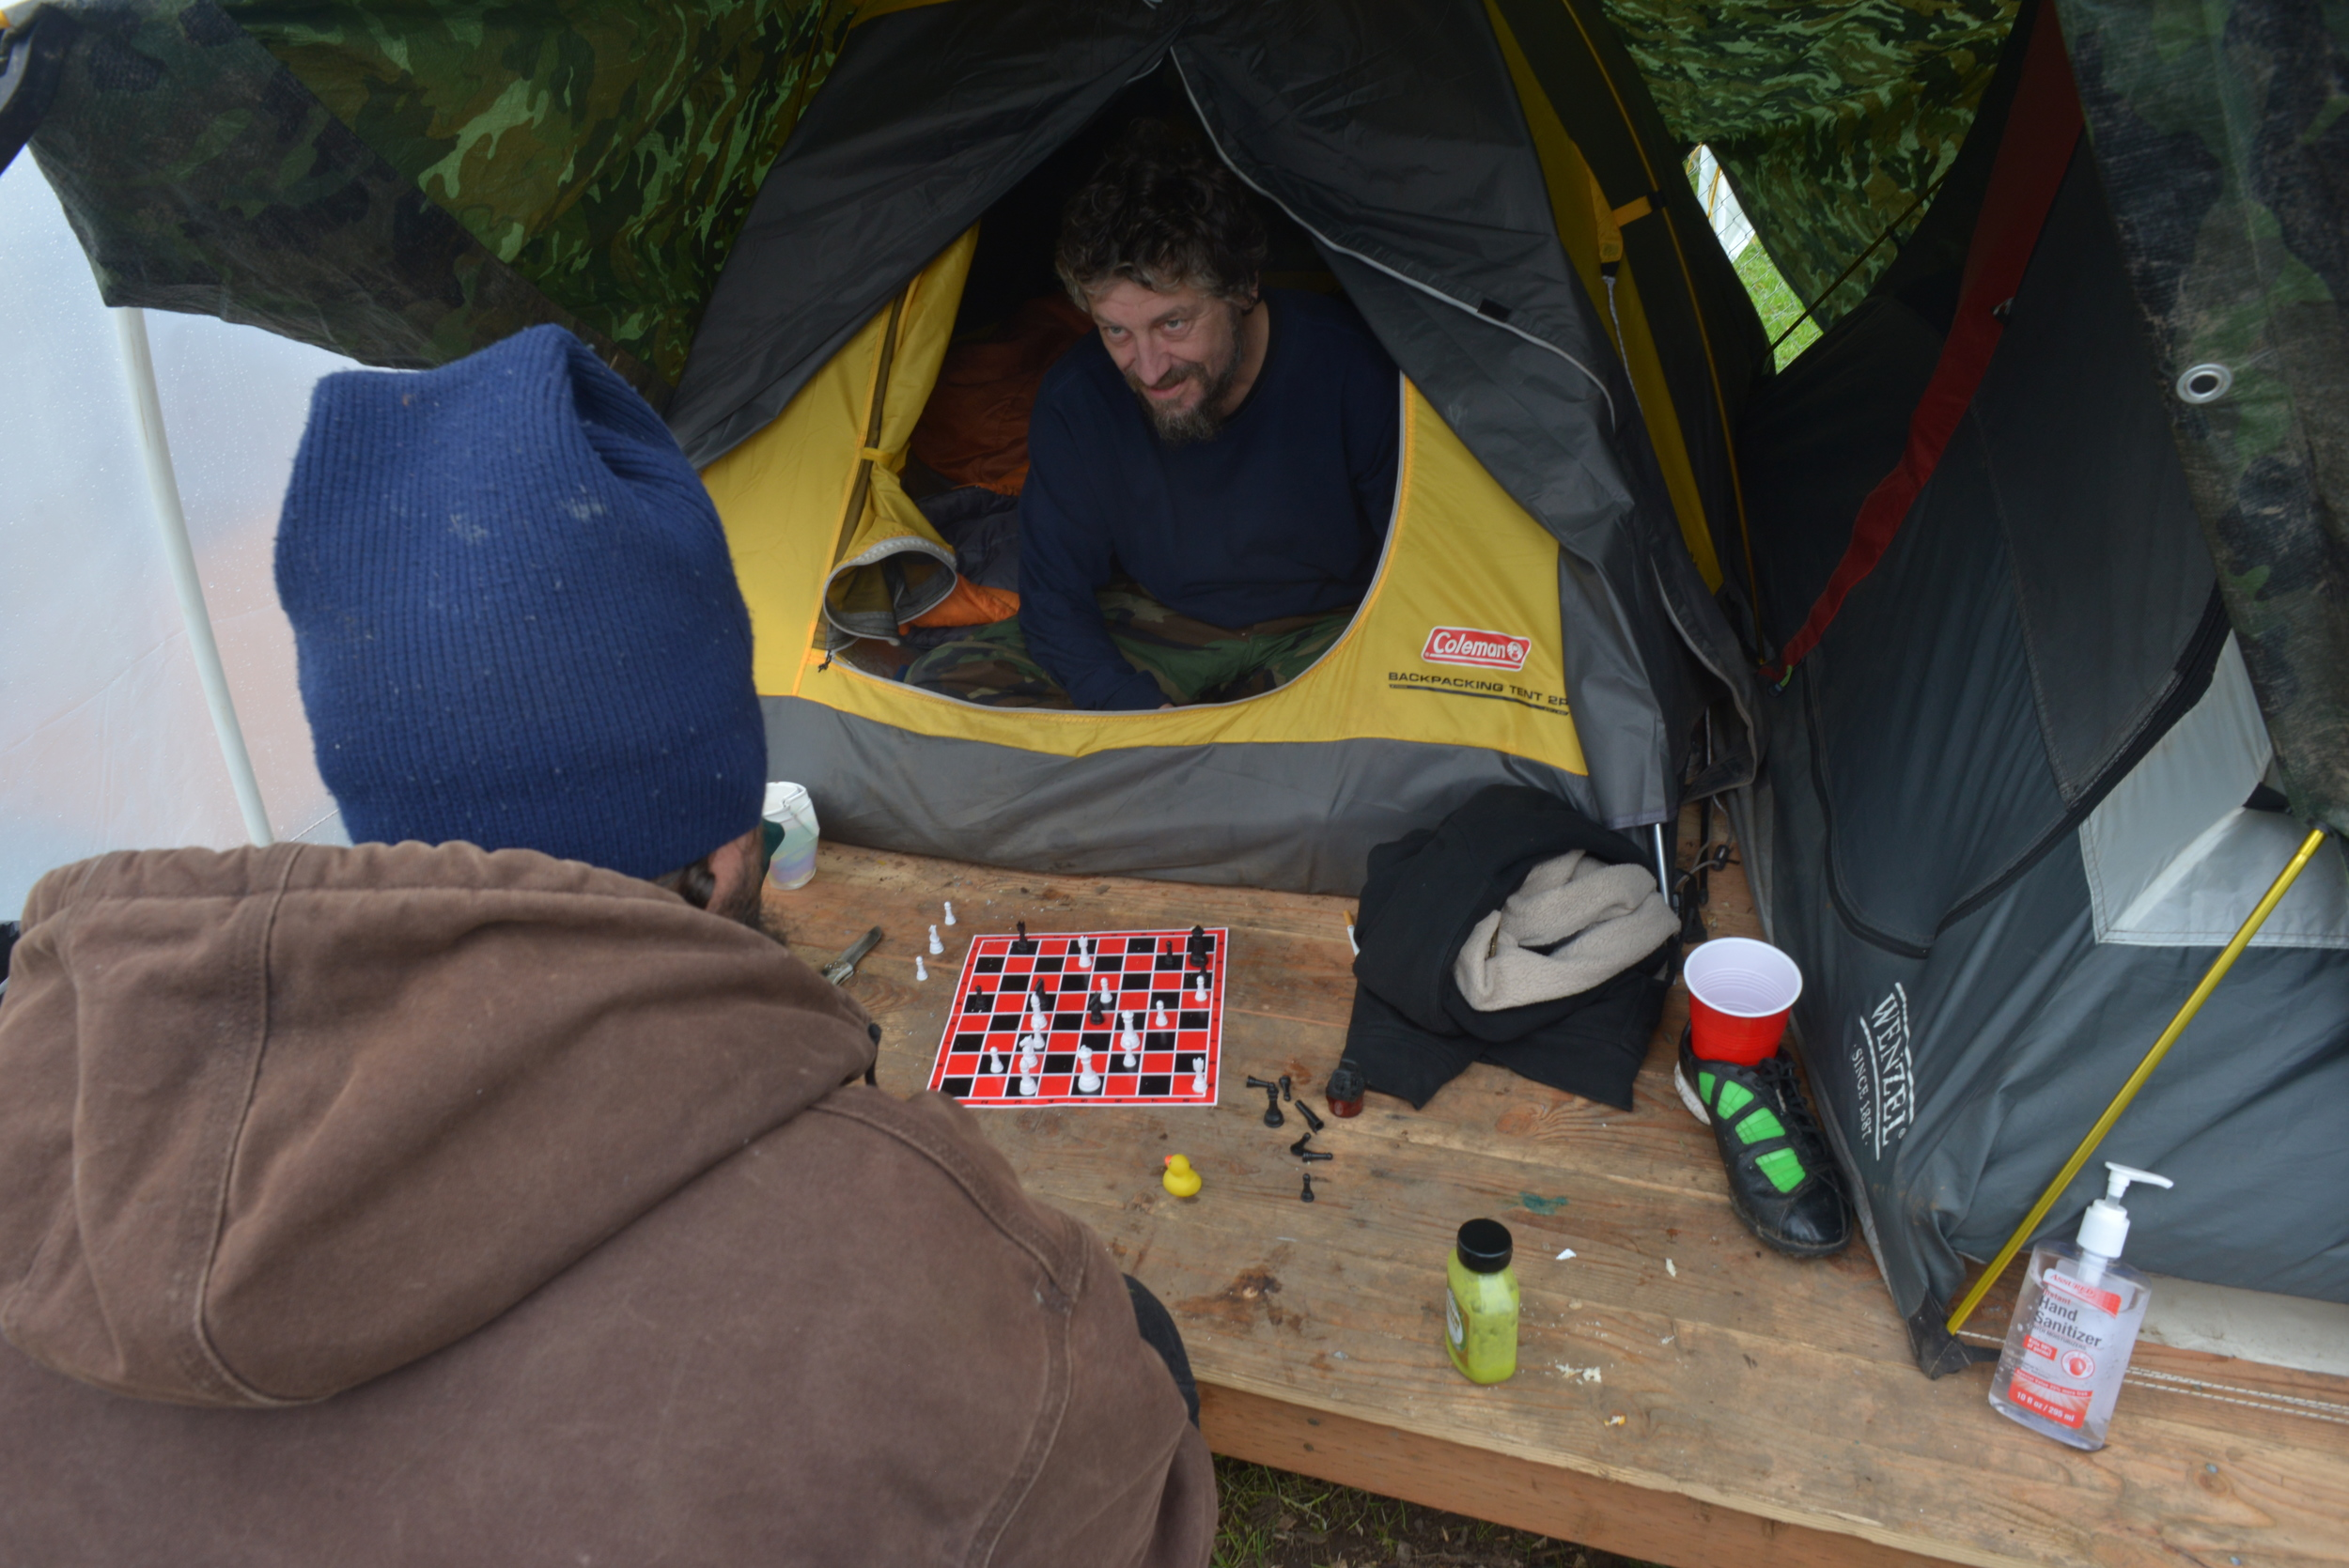 Eugene, ORE - Residents of the Nightingale Health Sanctuary playing chess in their conestega housing. By: Debra Josephson